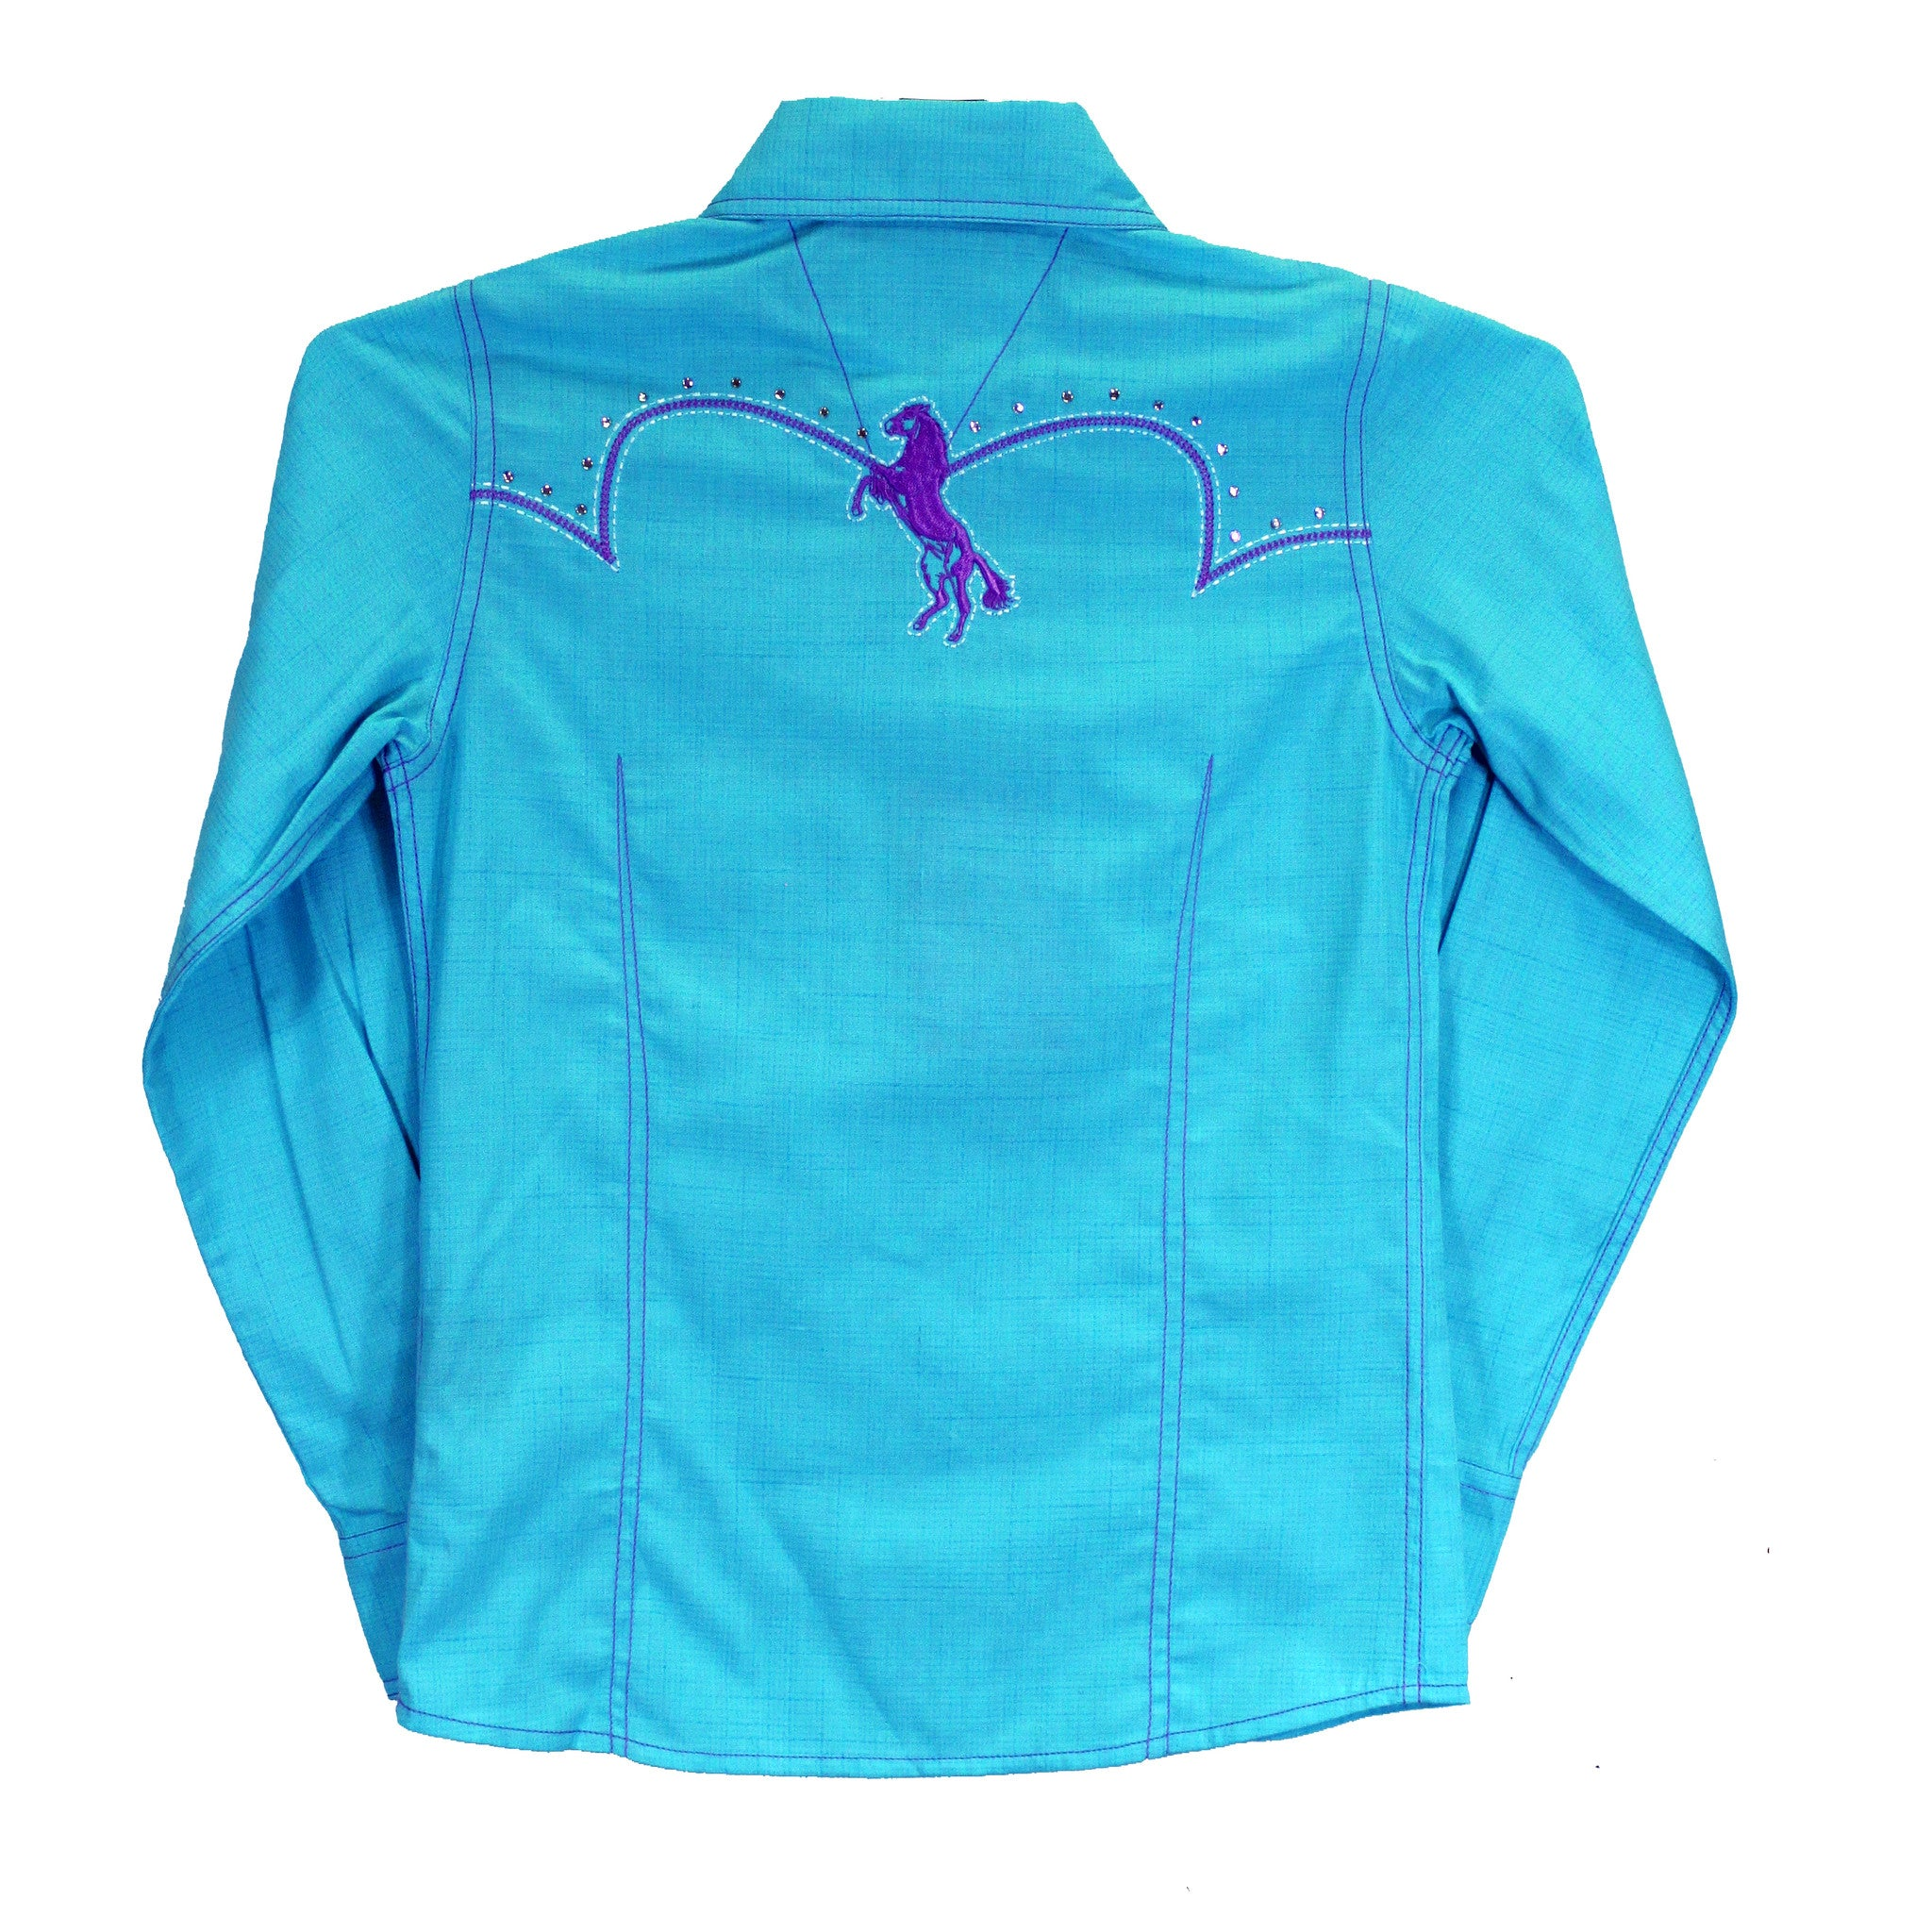 Cowgirl Hardware Infant Toddler Turquoise/Purple Show Shirt 825322-I2